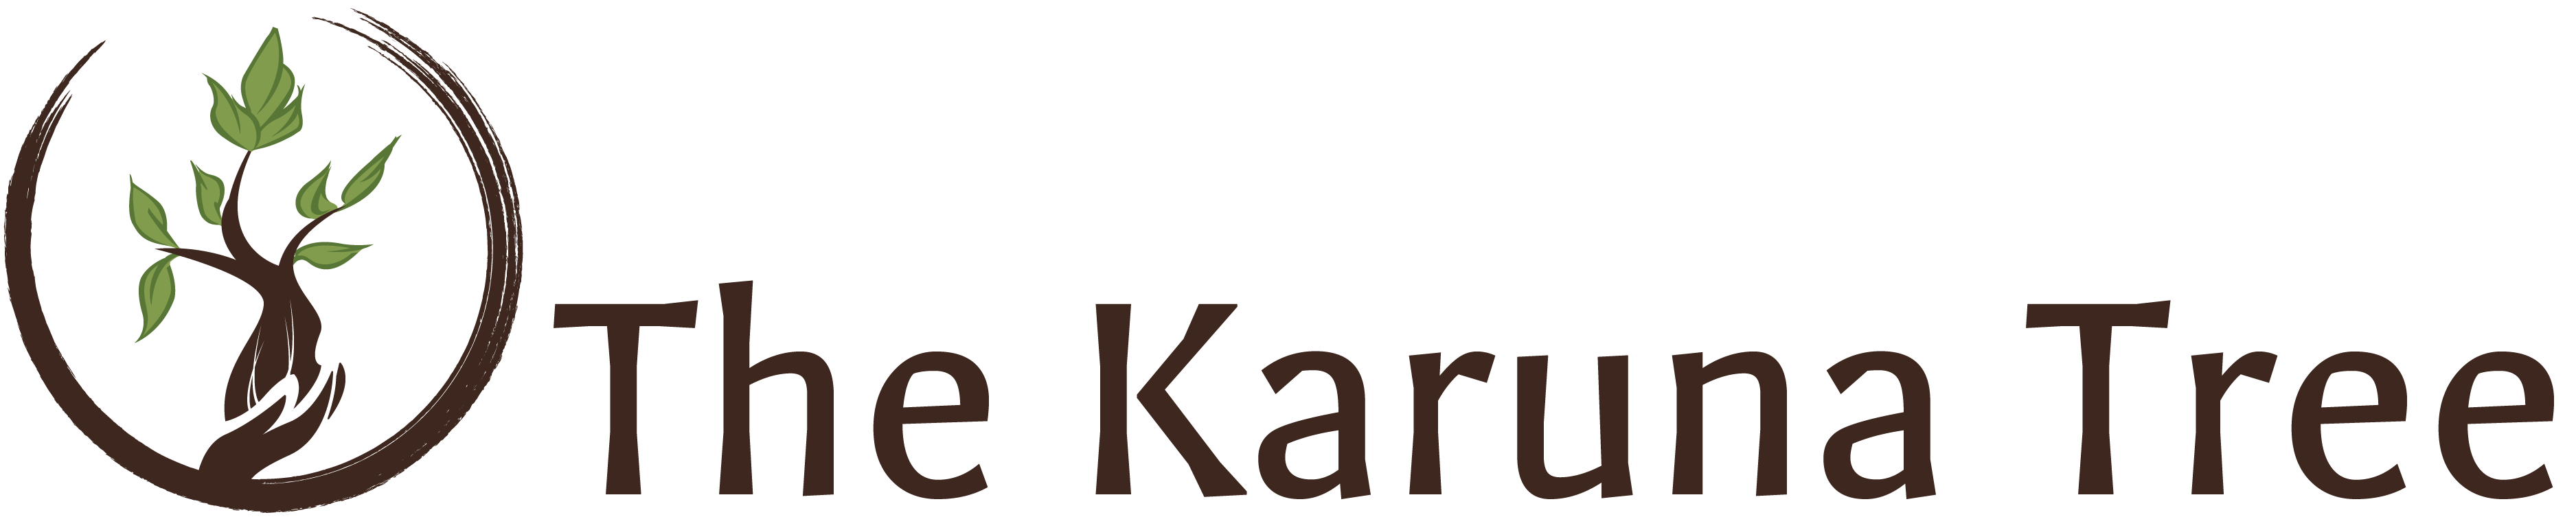 The Karuna Tree